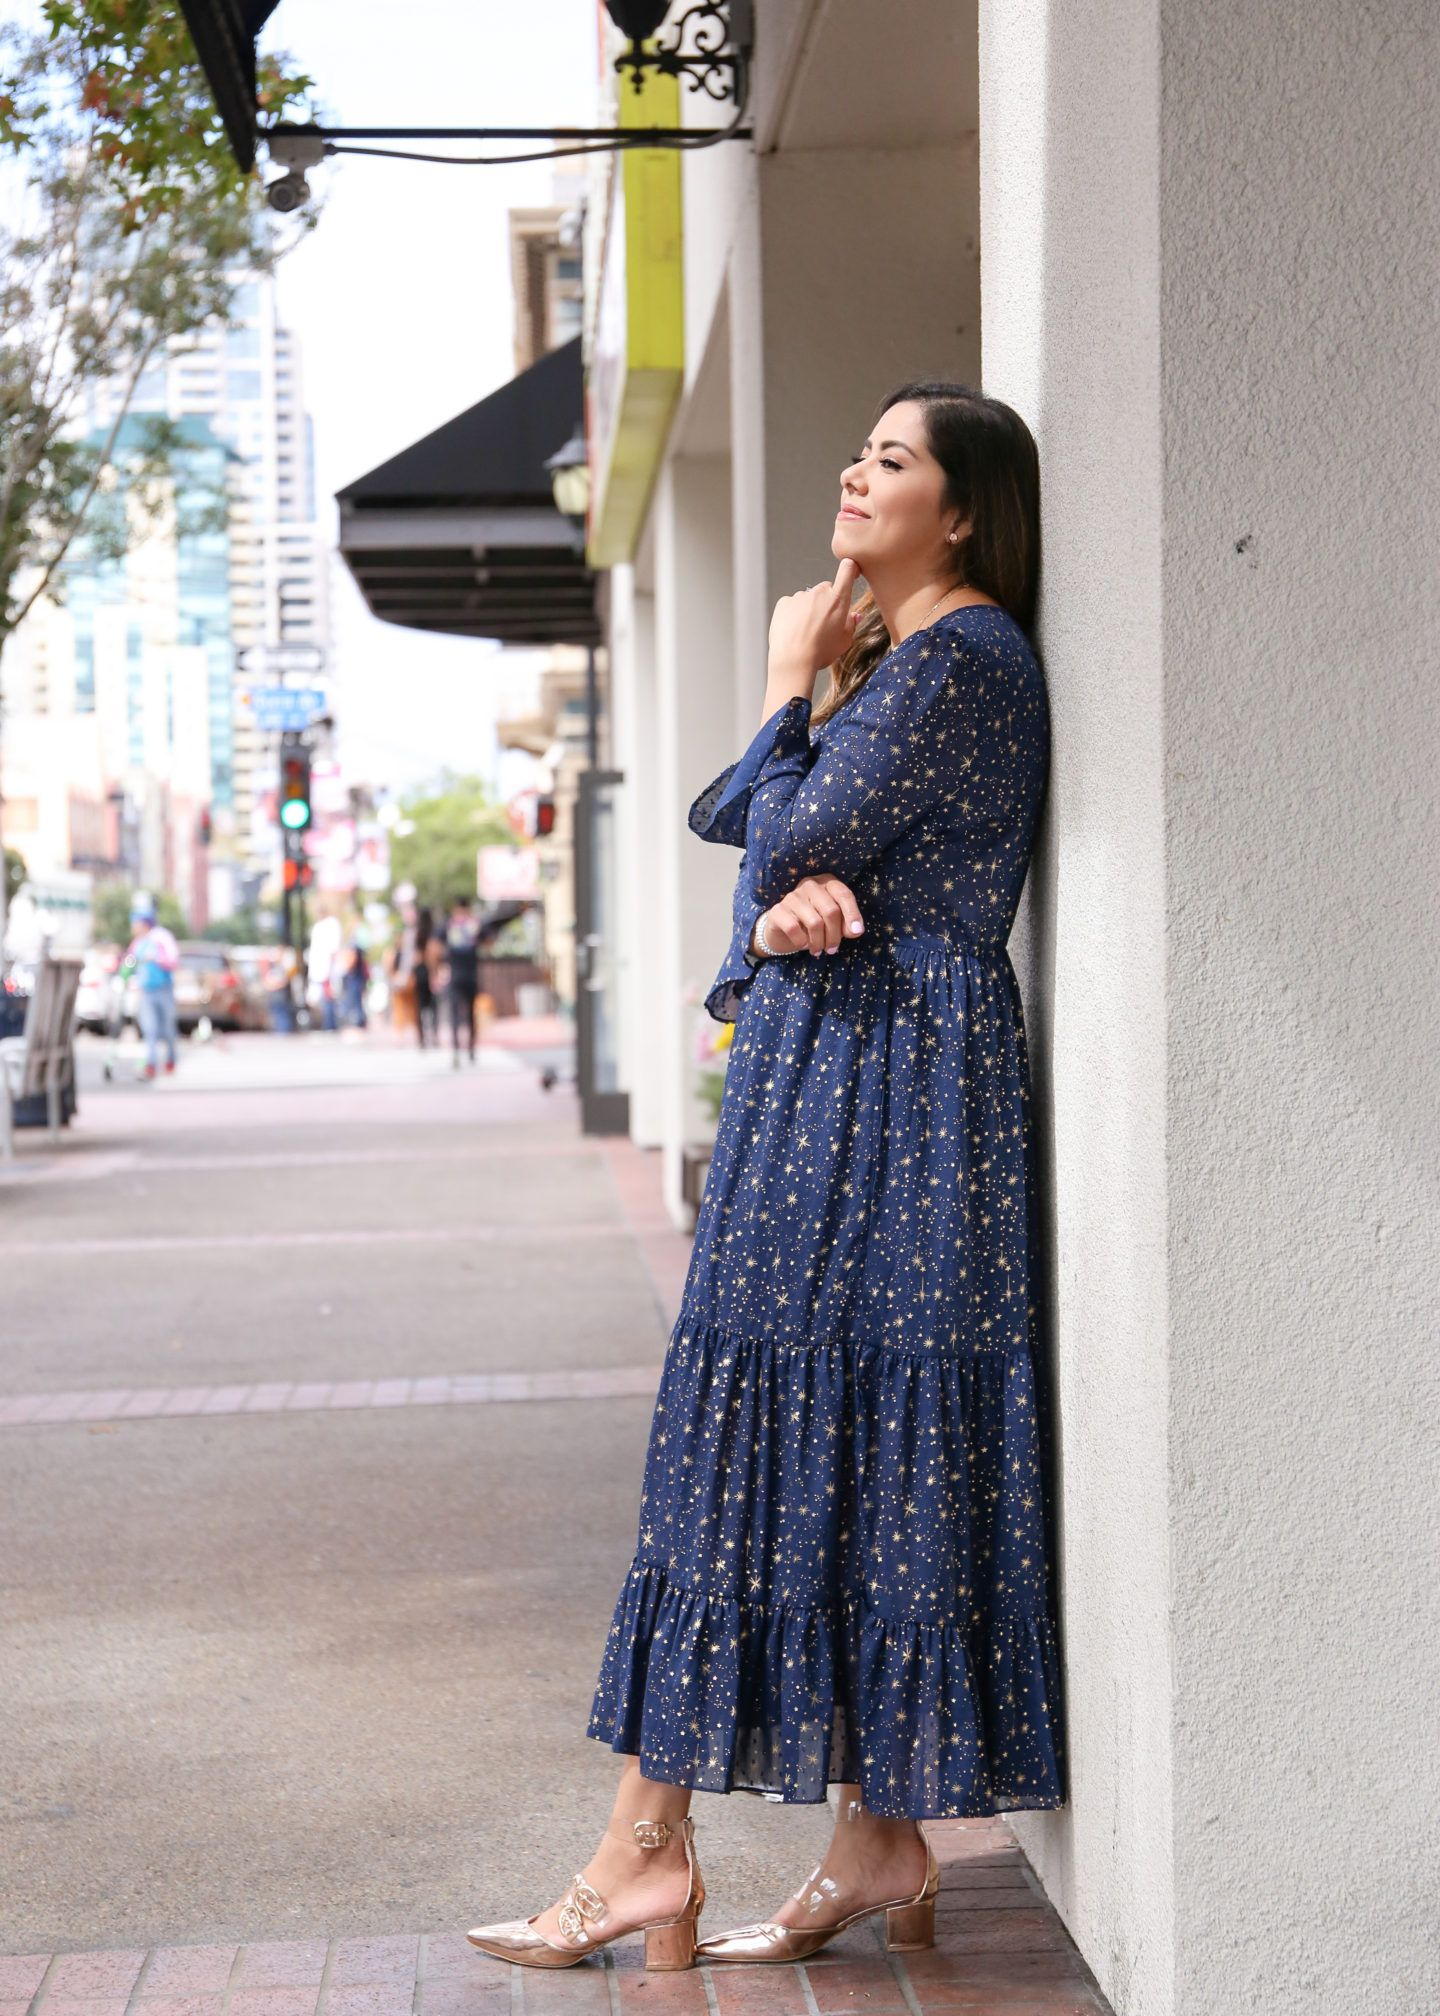 Fall Wedding Guest Outfit Ideas in 2020 Wedding guest